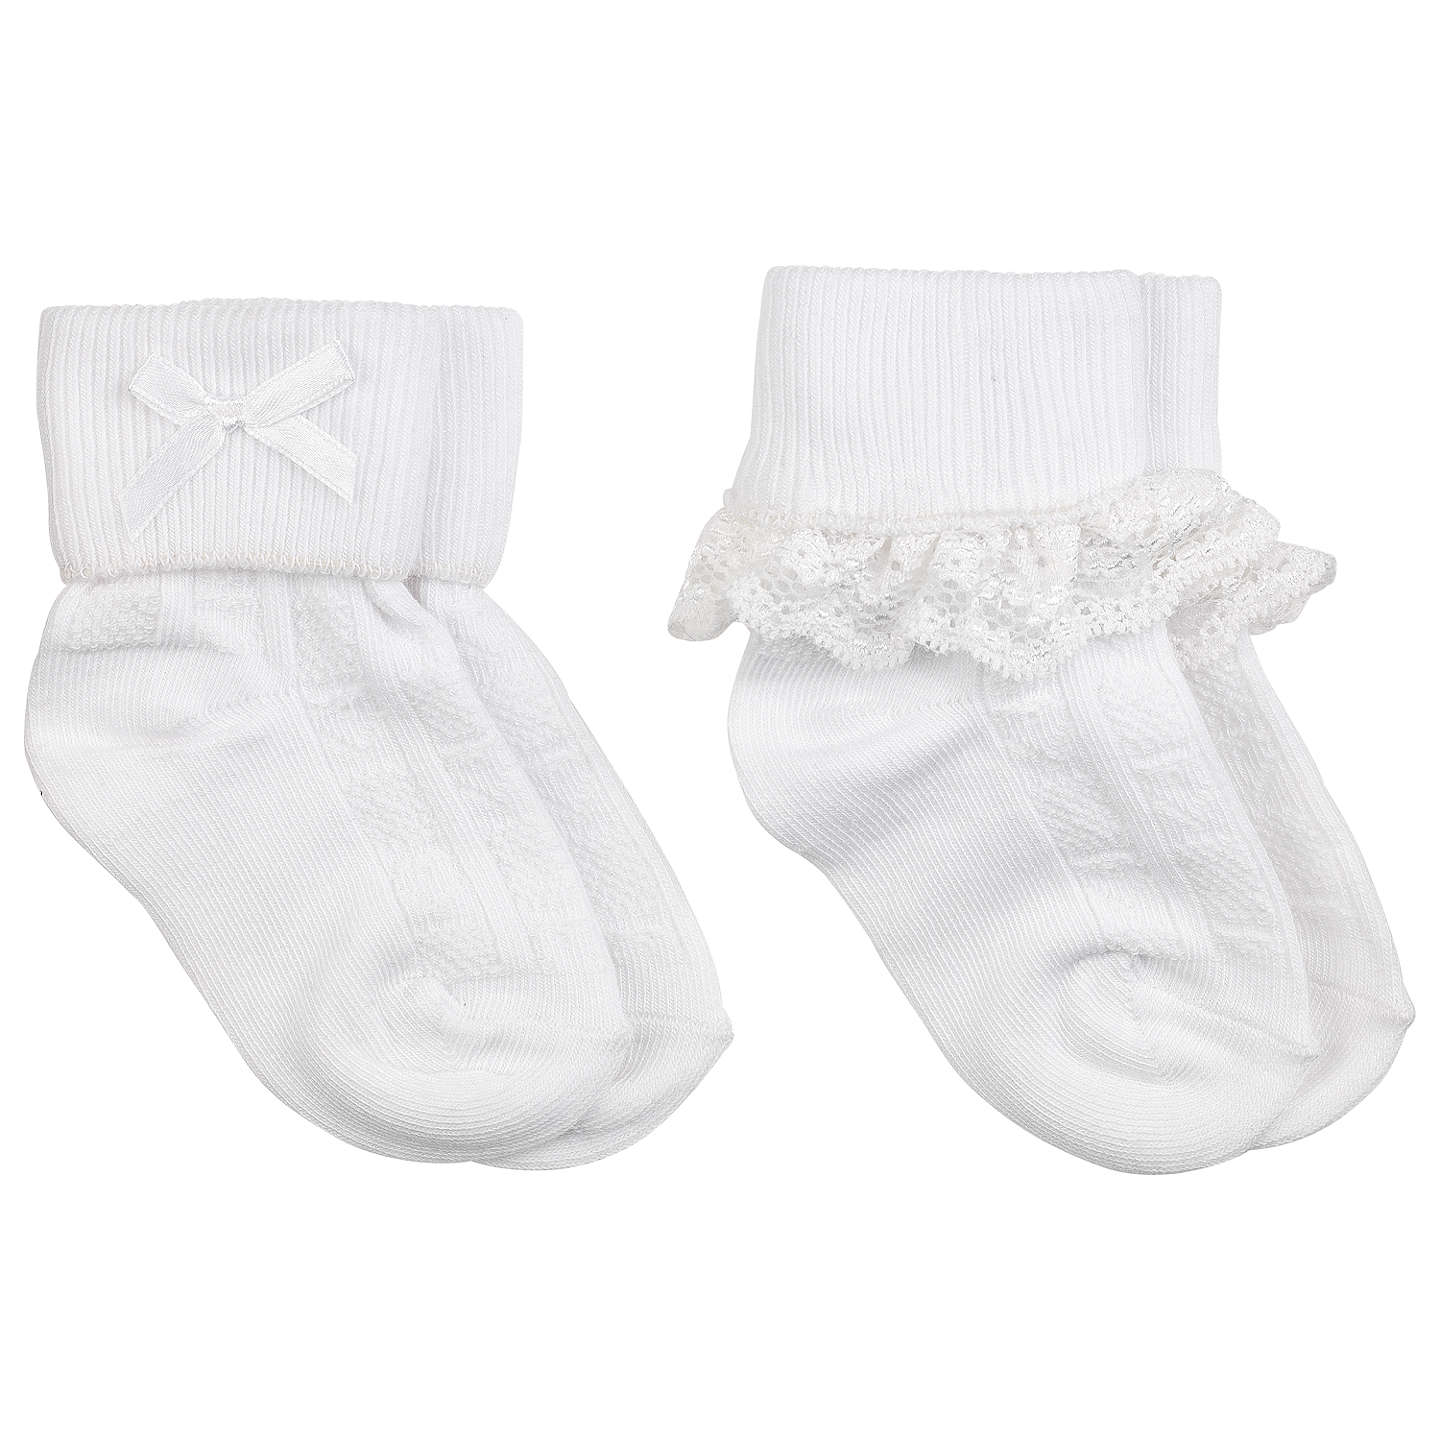 John Lewis Baby Lace Trim Socks Pack of 2 at John Lewis